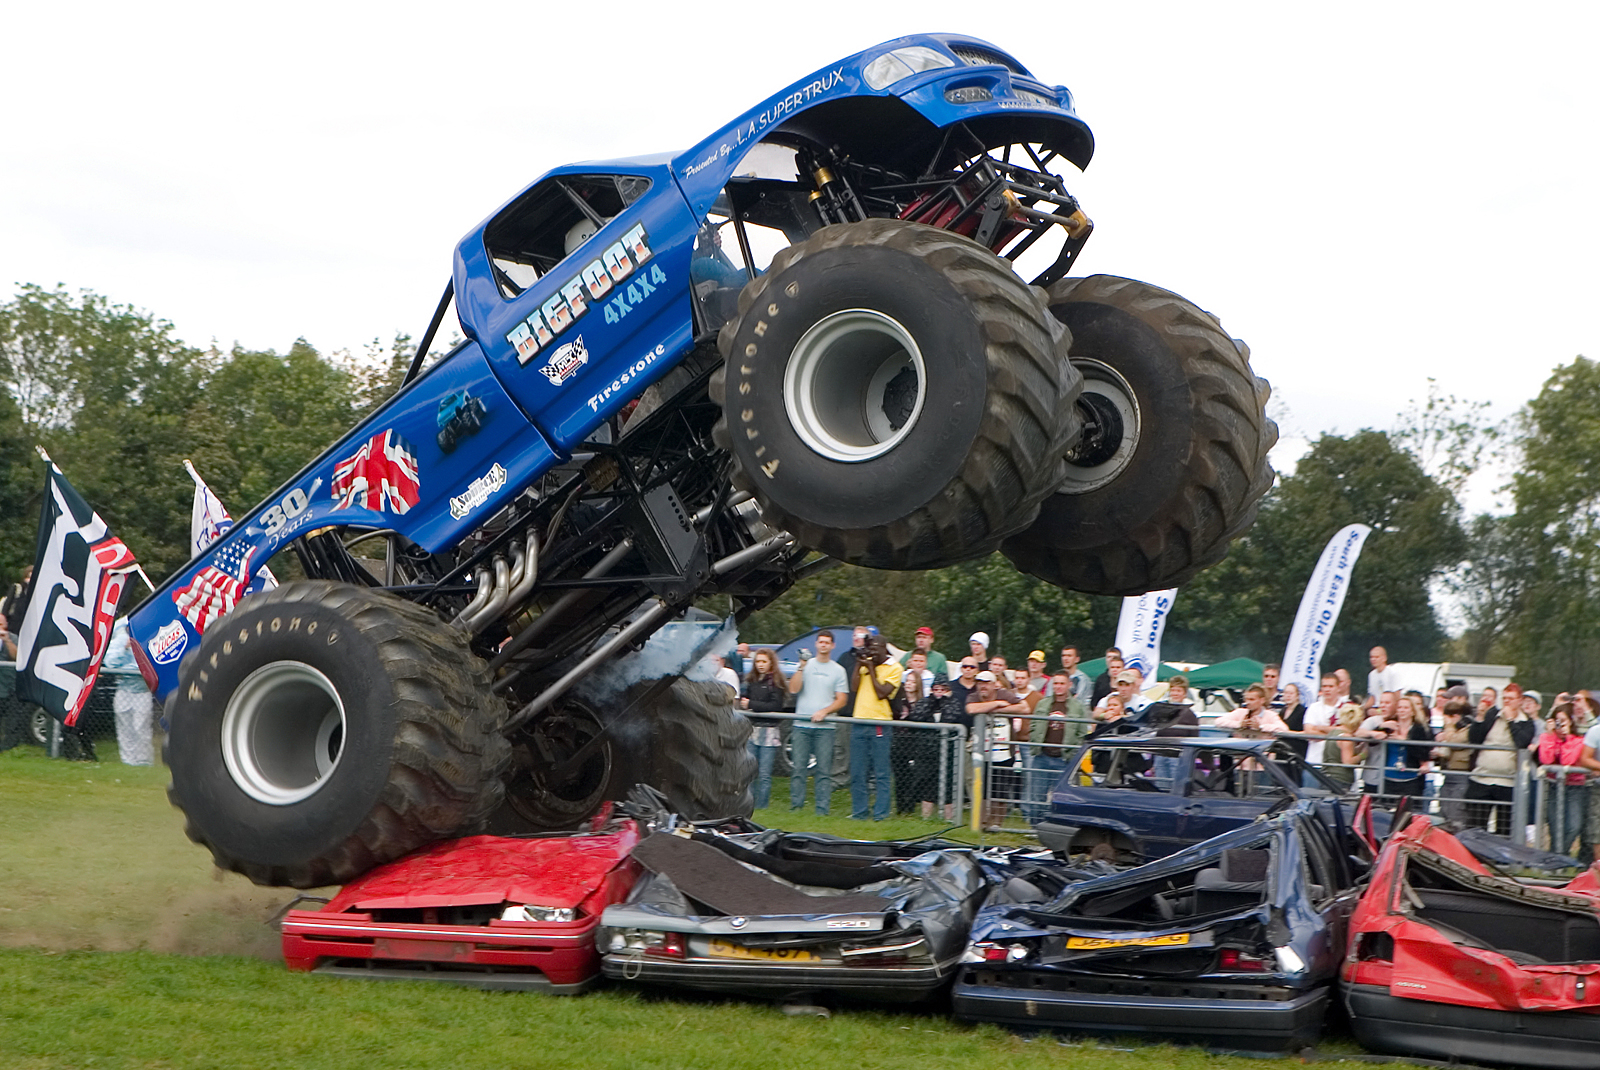 monstertrucks_wallpaper_018_1600_1070.jpg